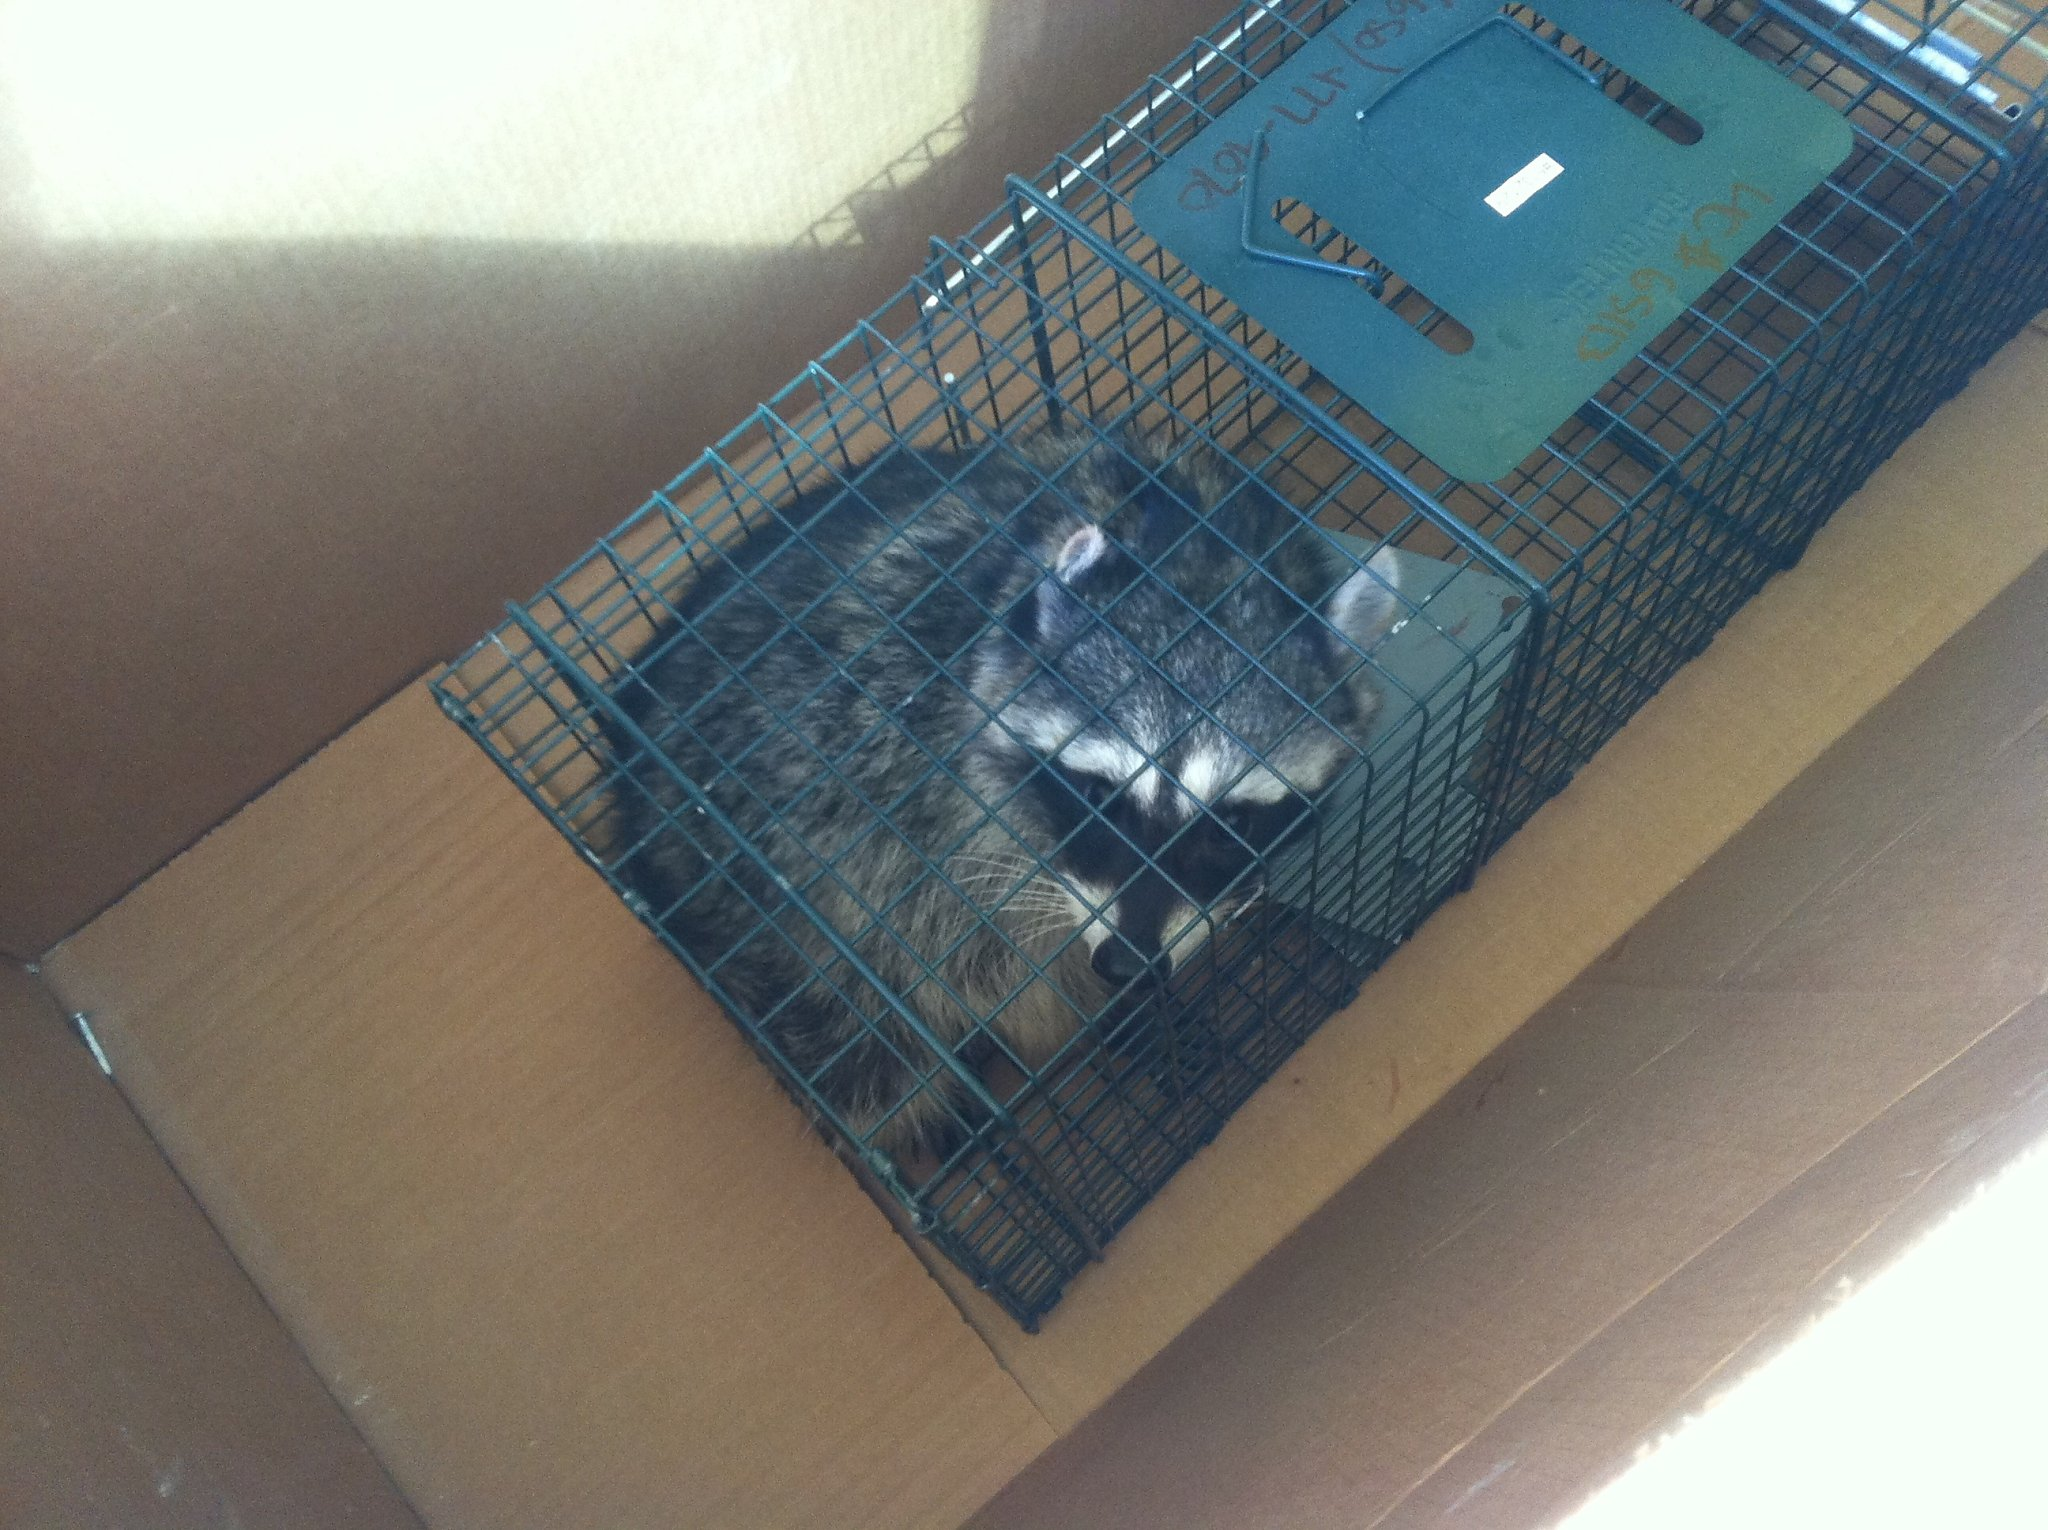 brace and bit raccoon trap. carpenter fired for saving raccoon from trap at construction site - sfgate brace and bit